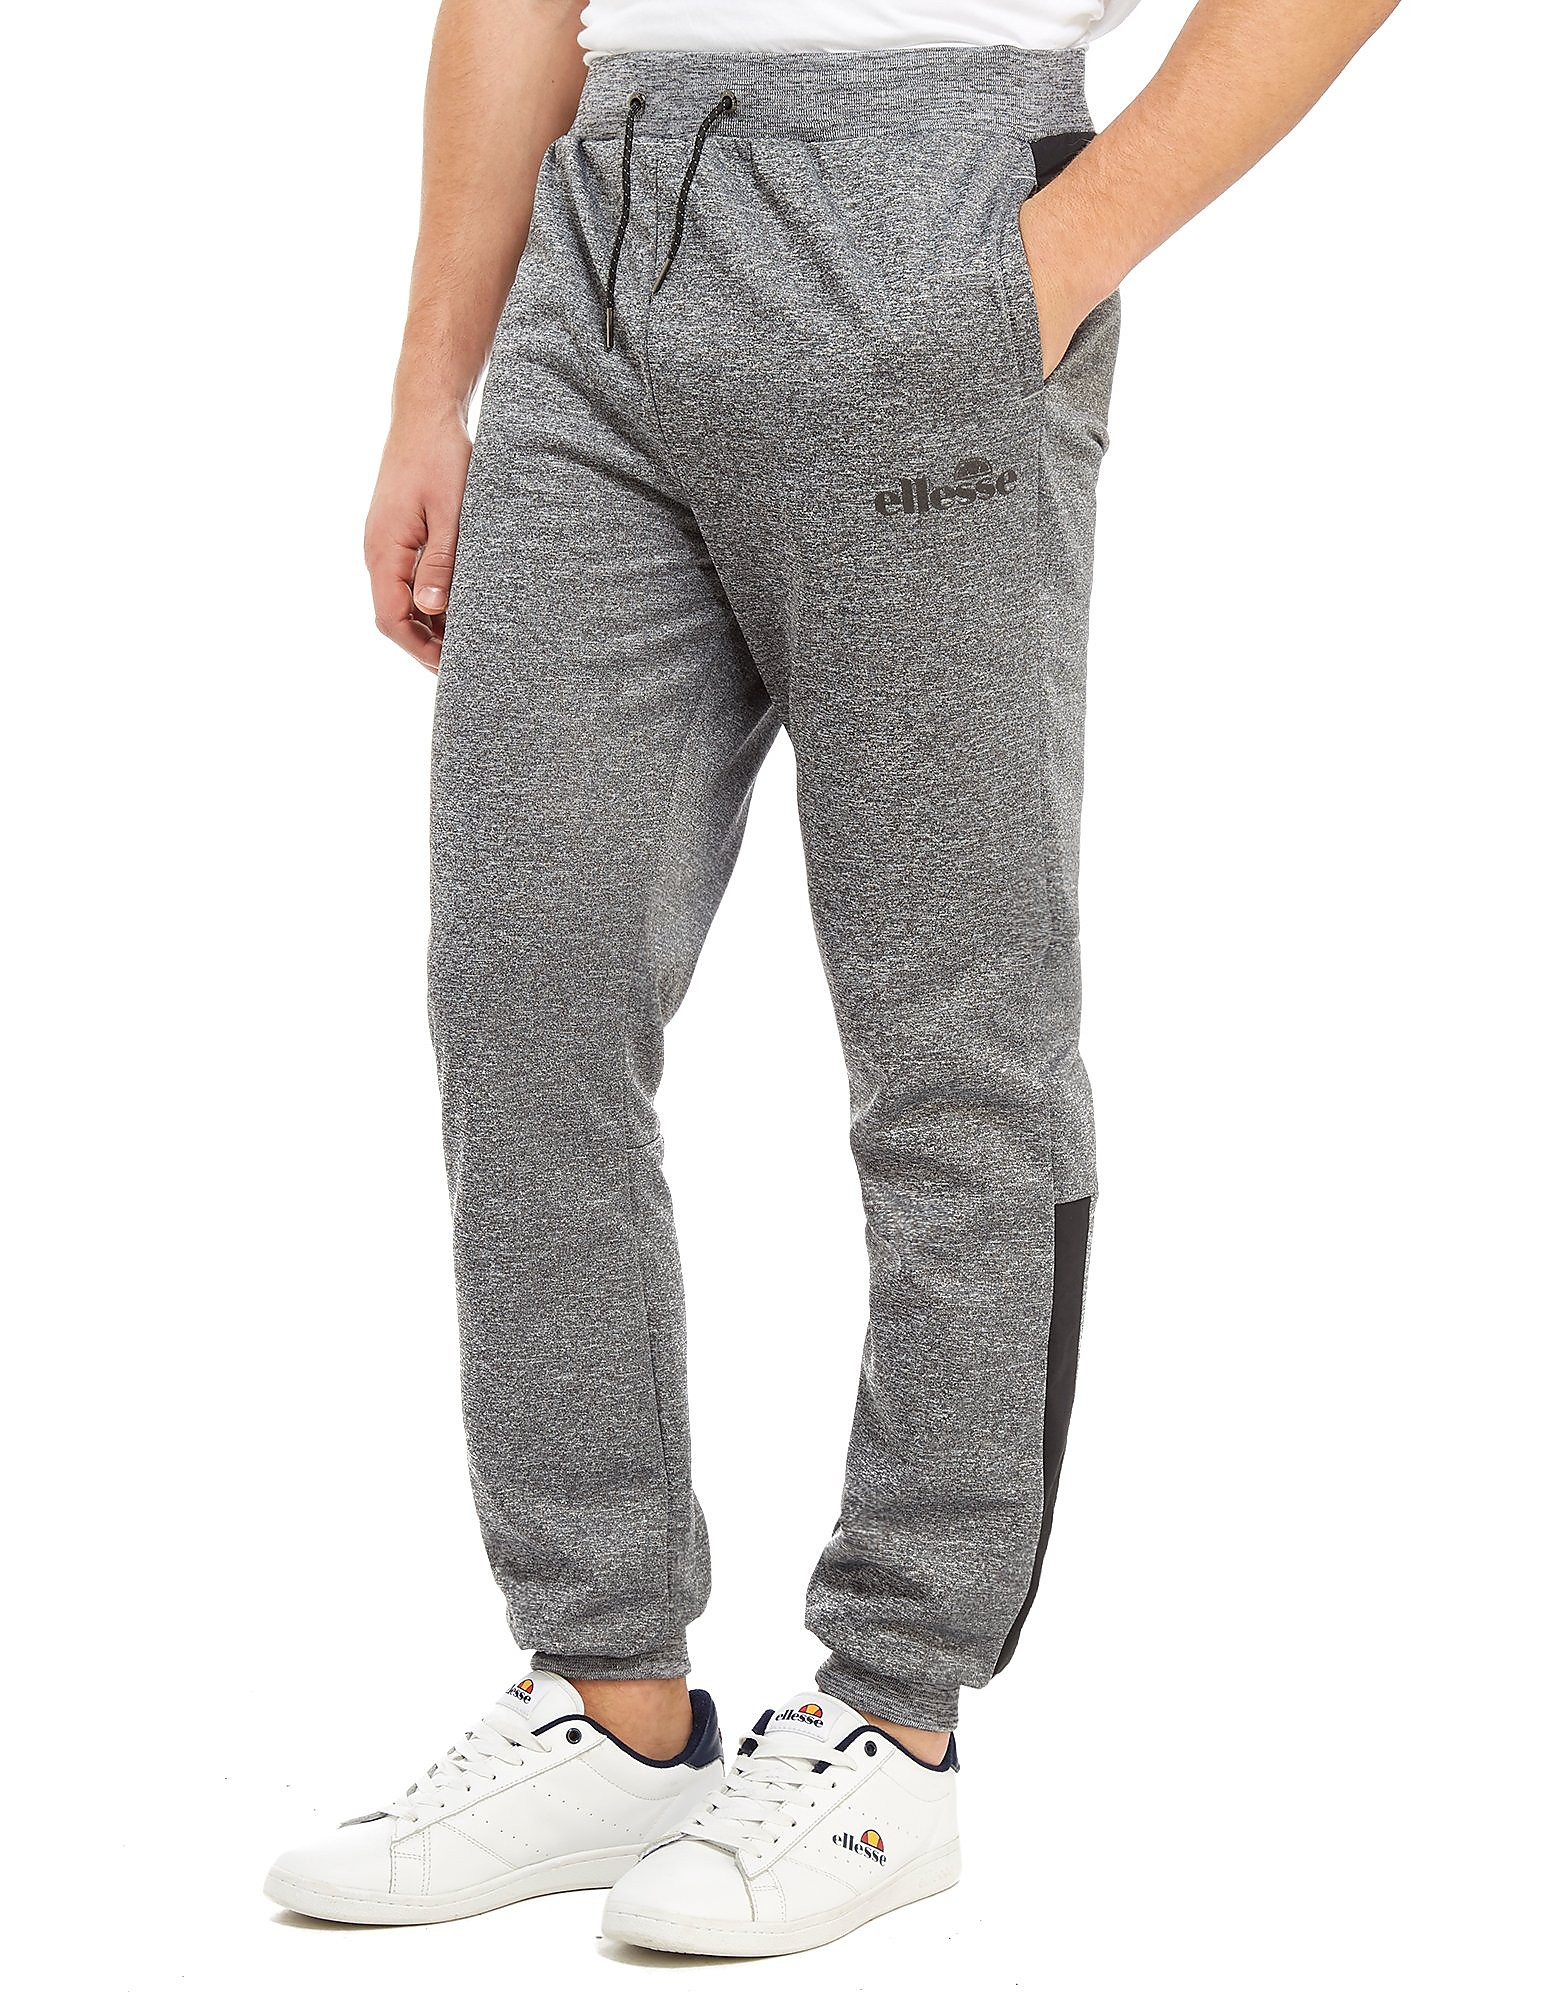 Ellesse Bacci Pants - Only at JD - Grey, Grey